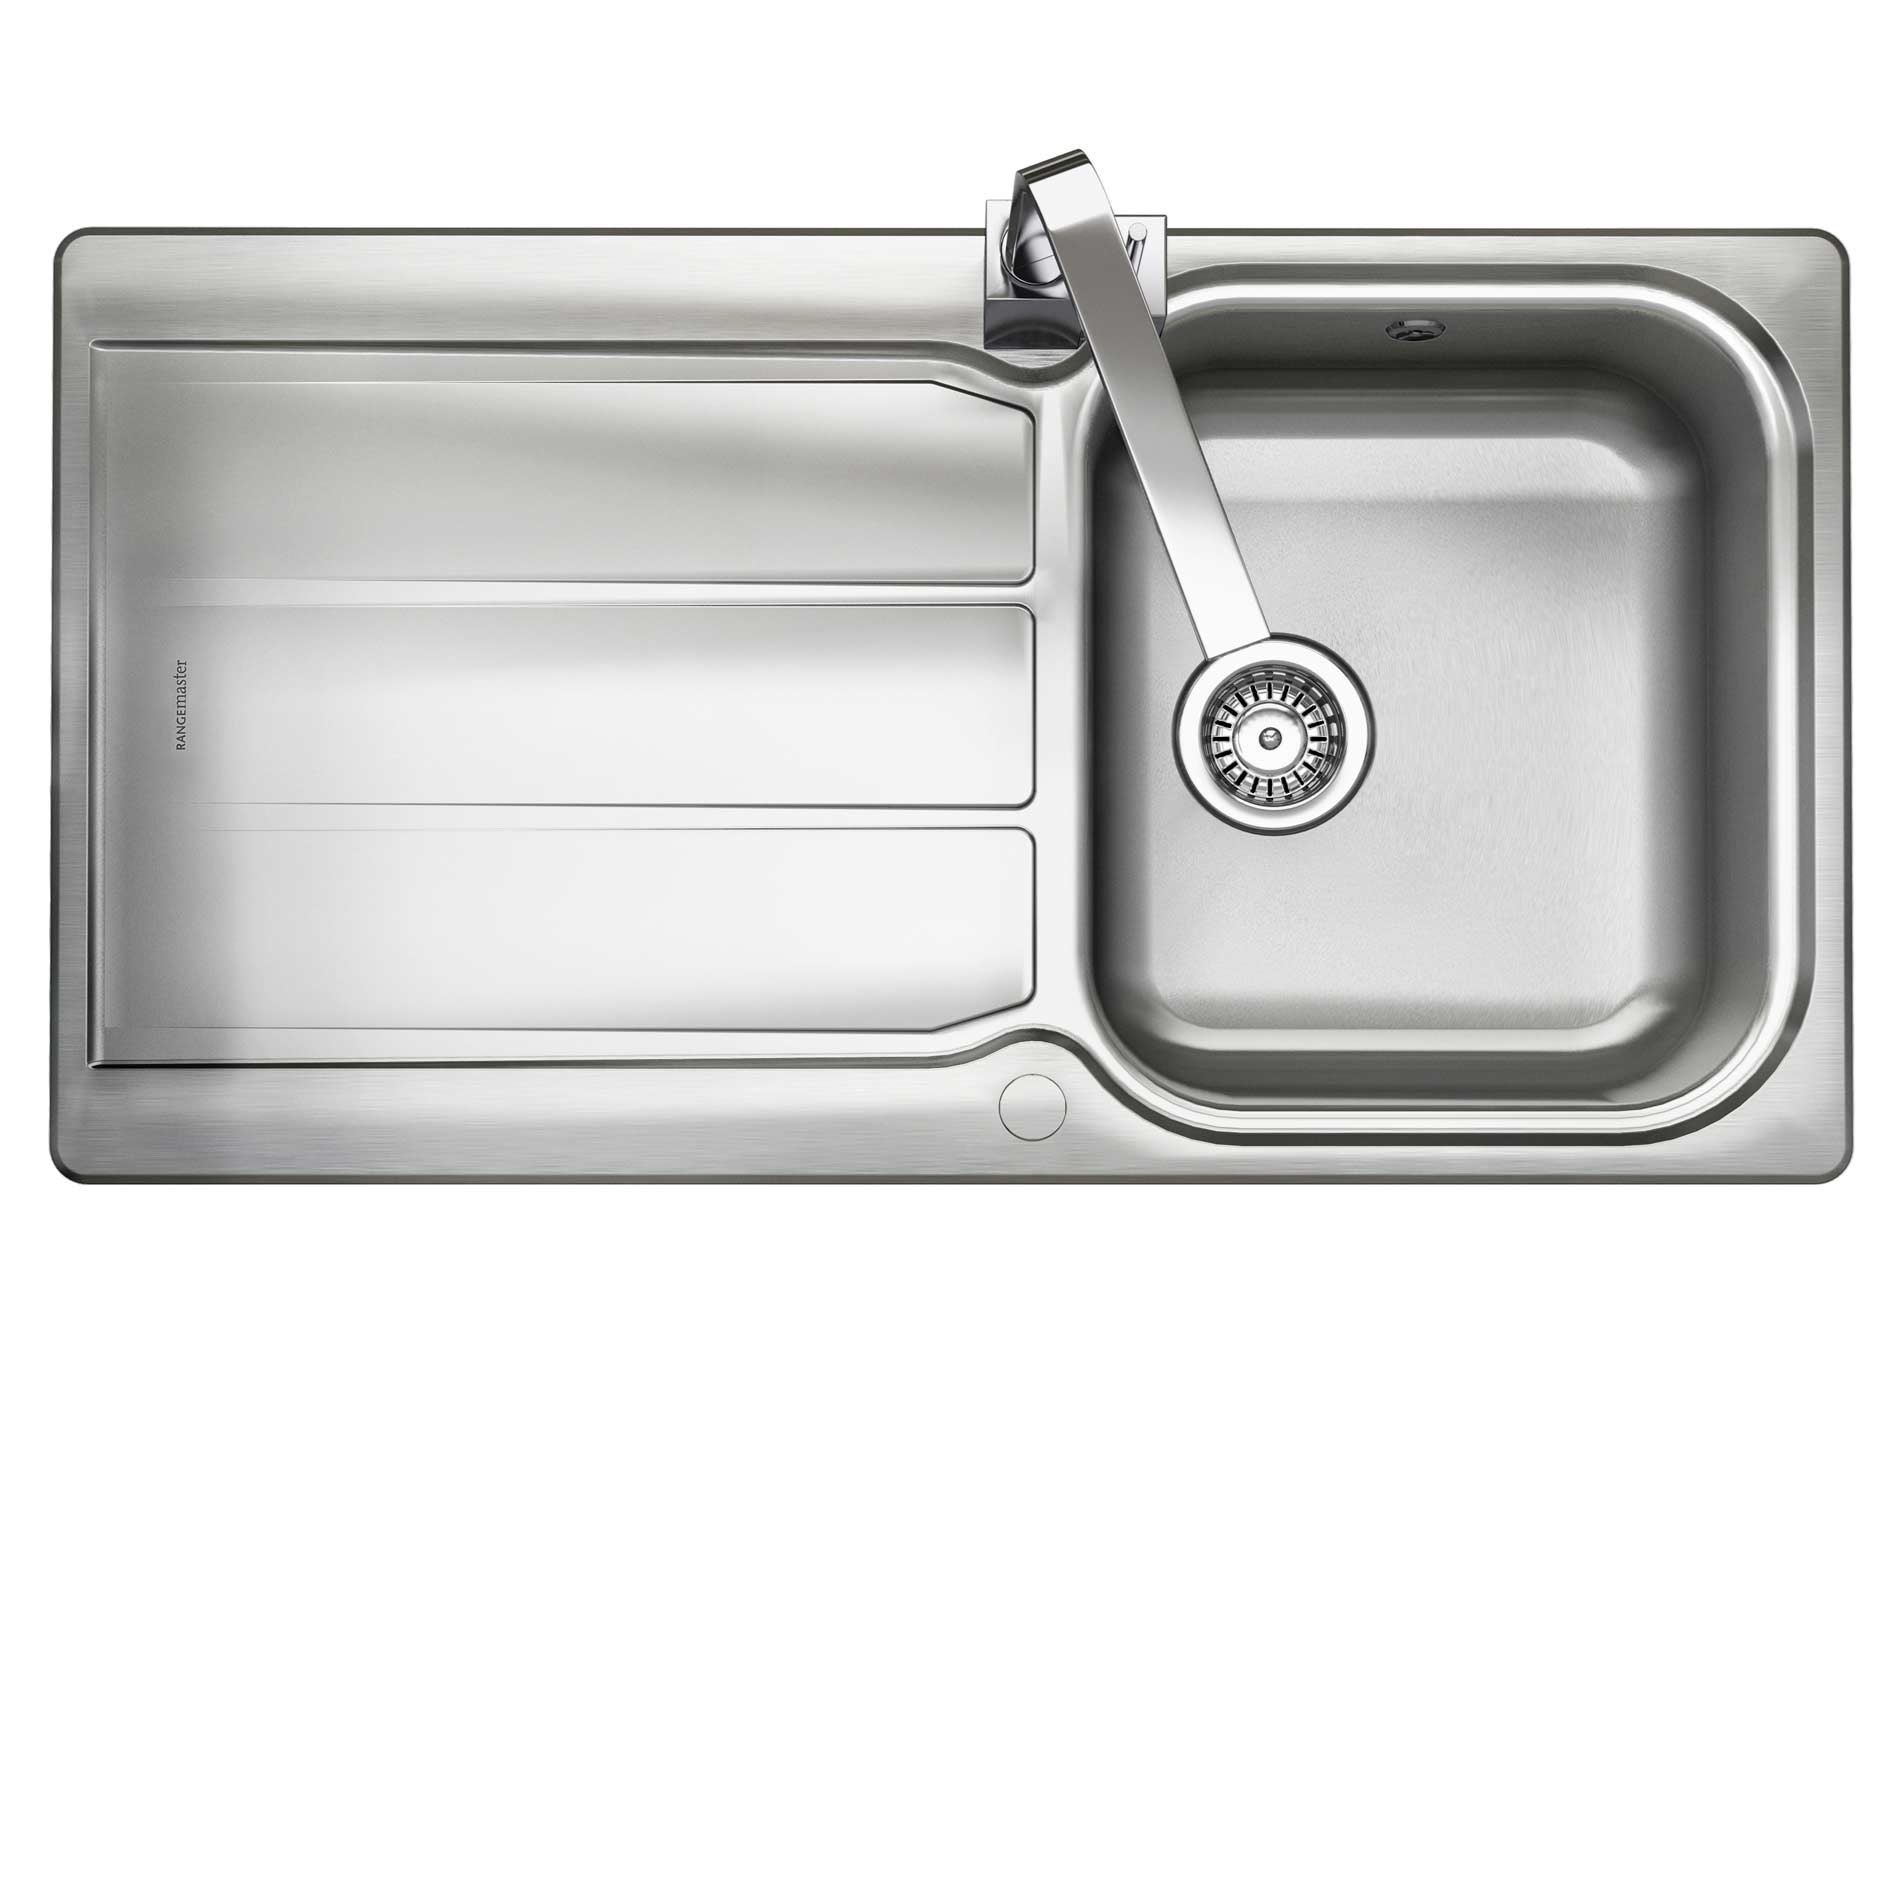 Picture of Glendale GL9501 Stainless Steel Sink